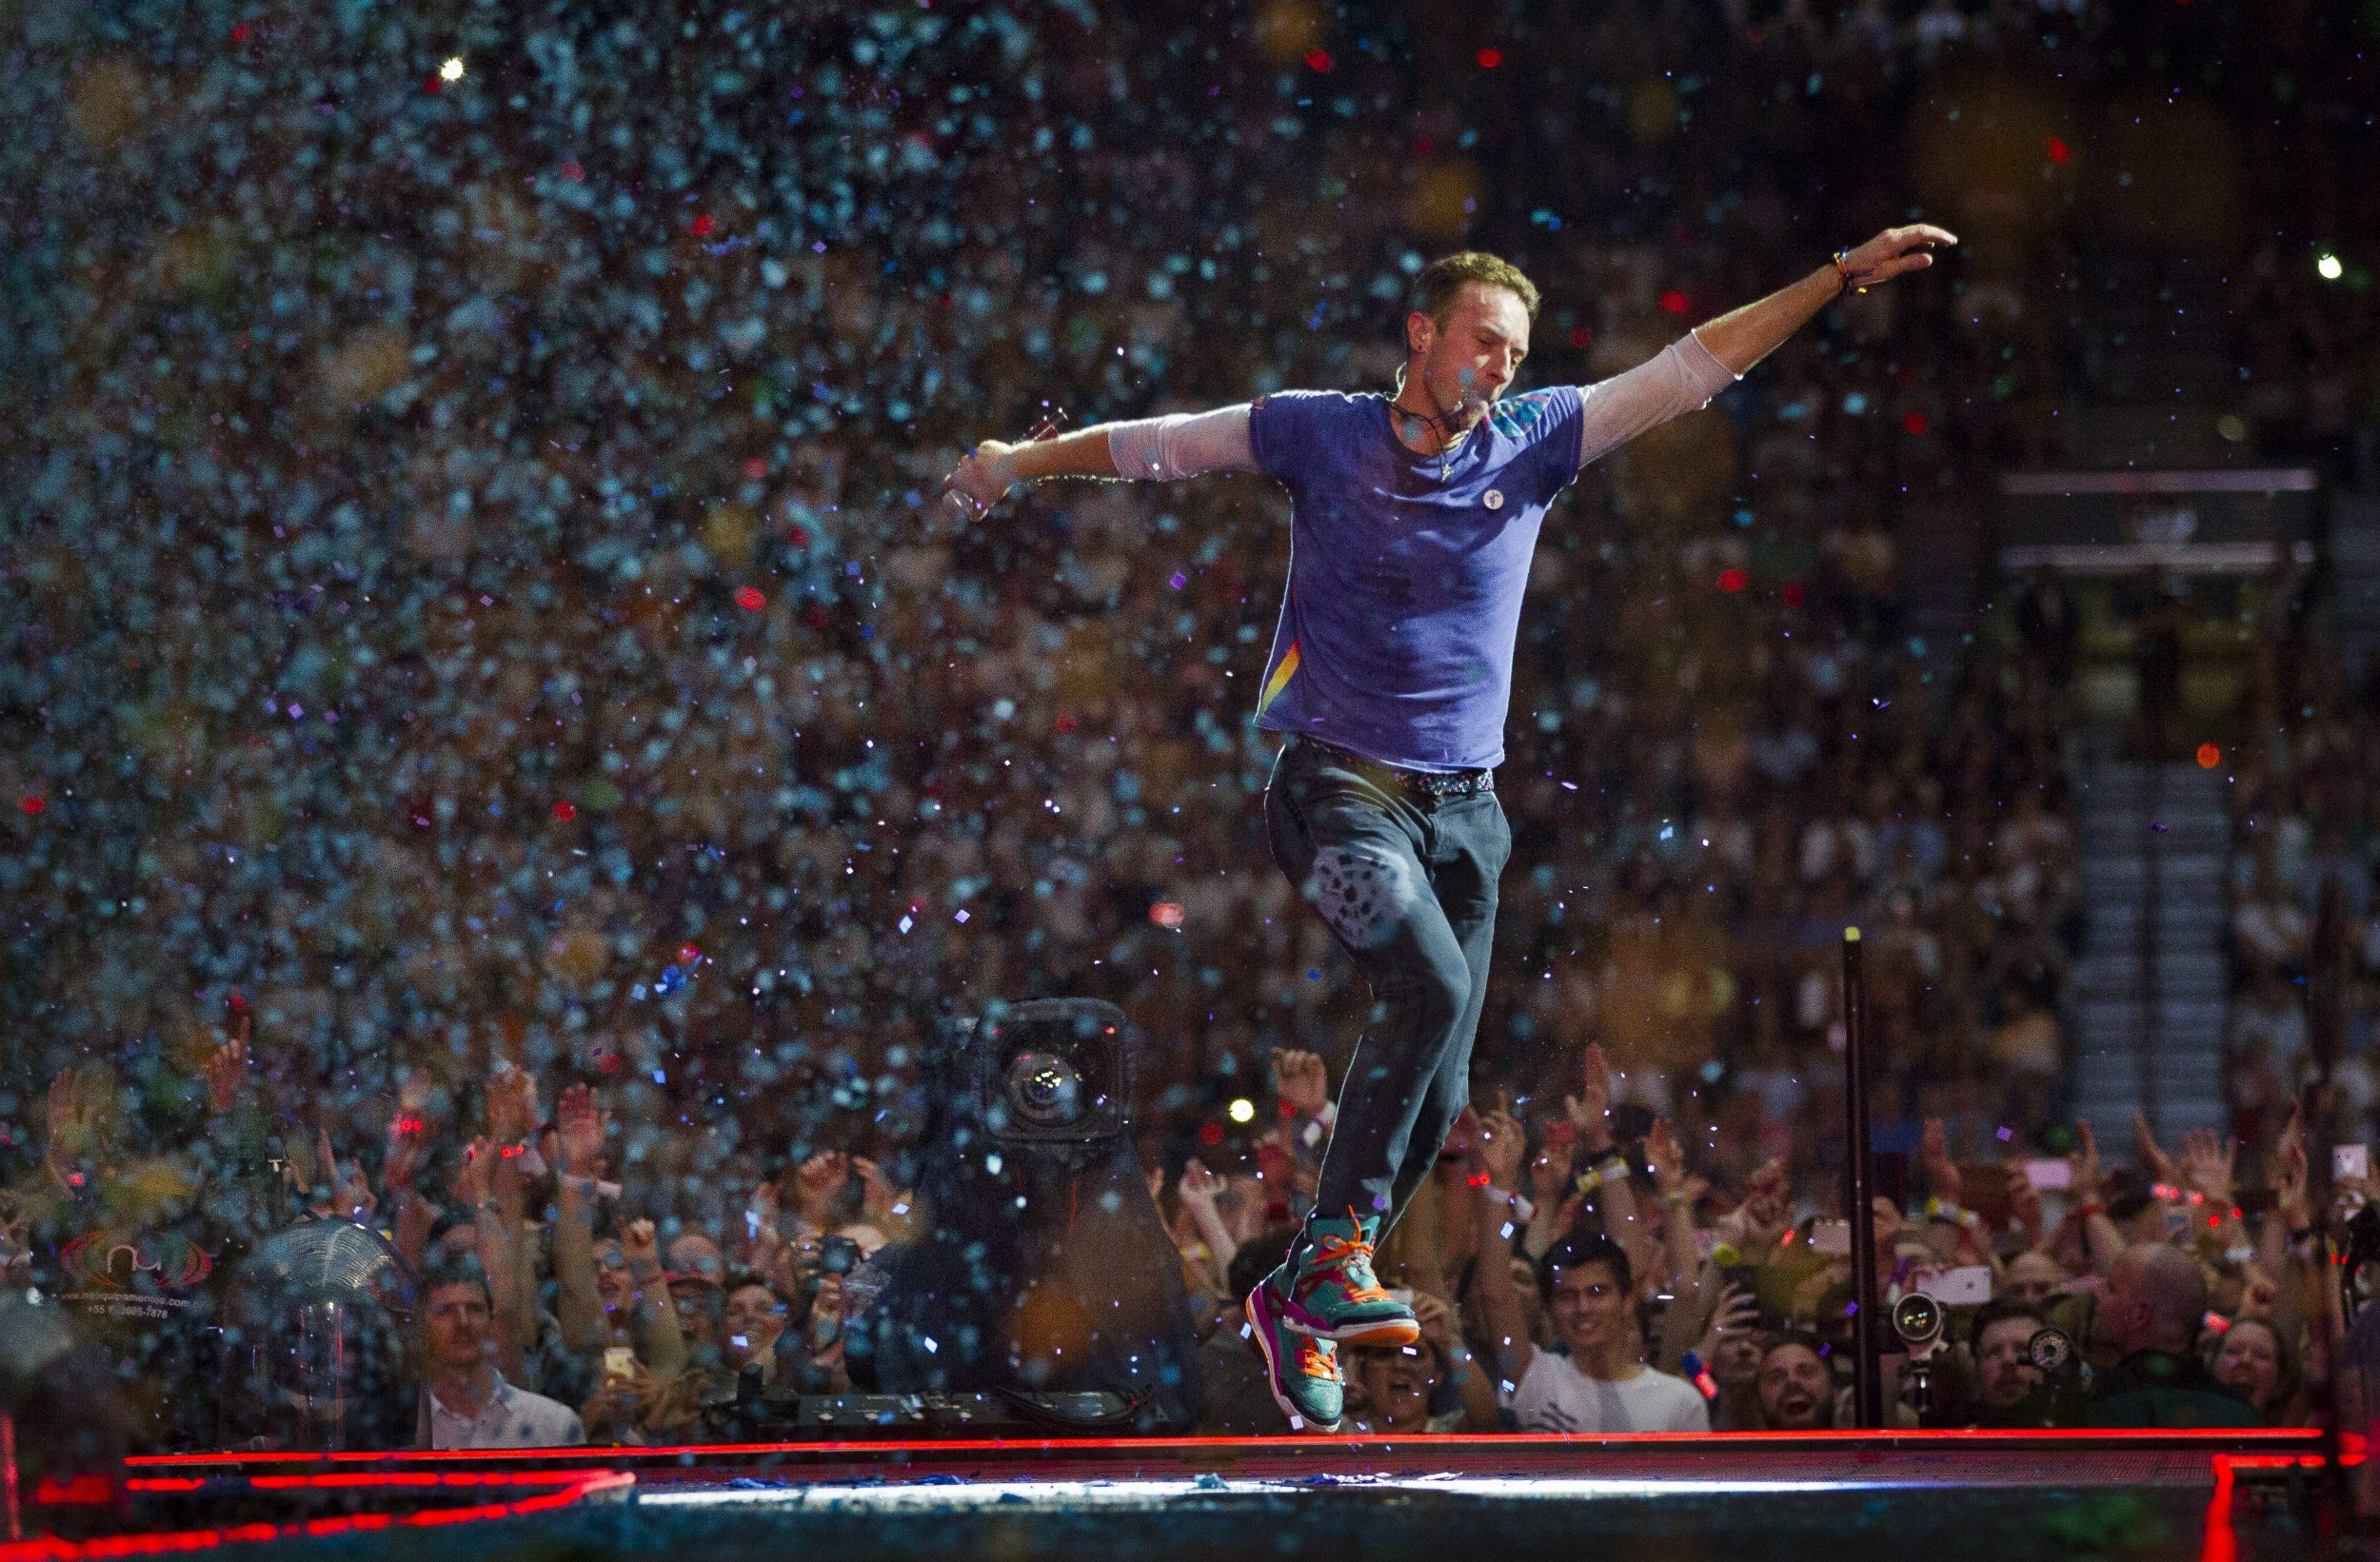 Coldplay tour in 2016